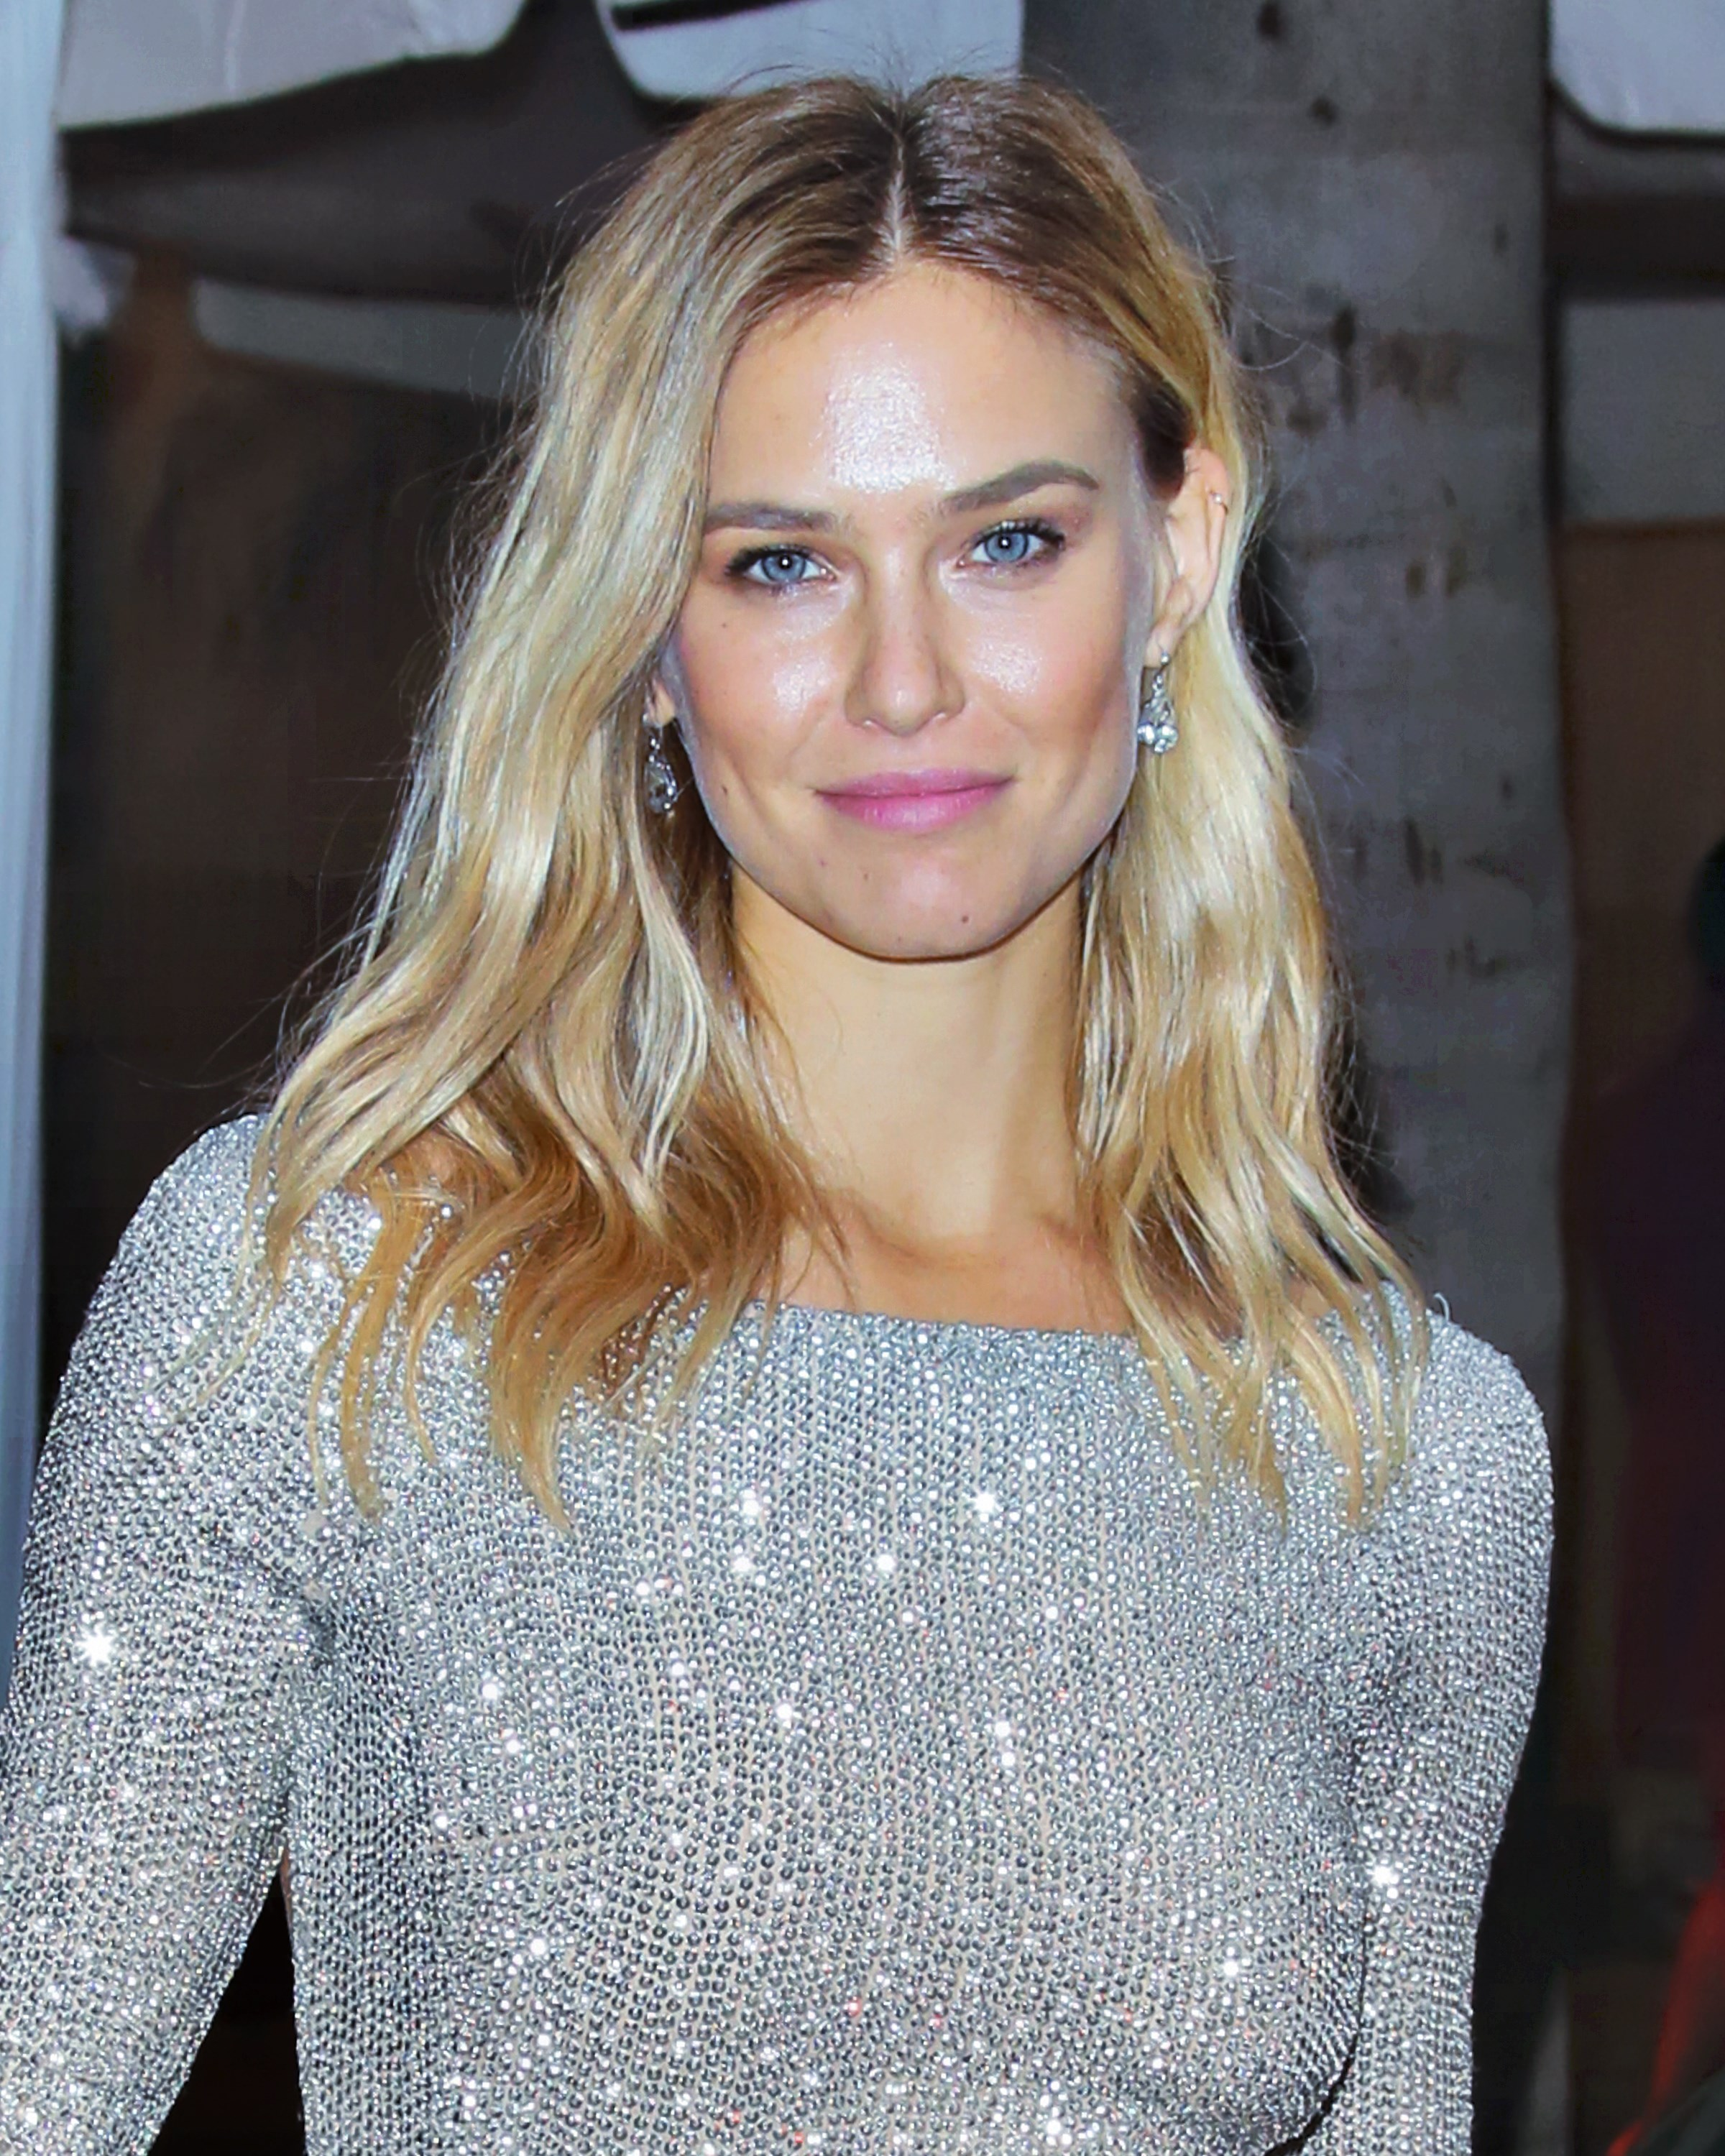 Bar Refaeli | Known people - famous people news and ... Bar Refaeli